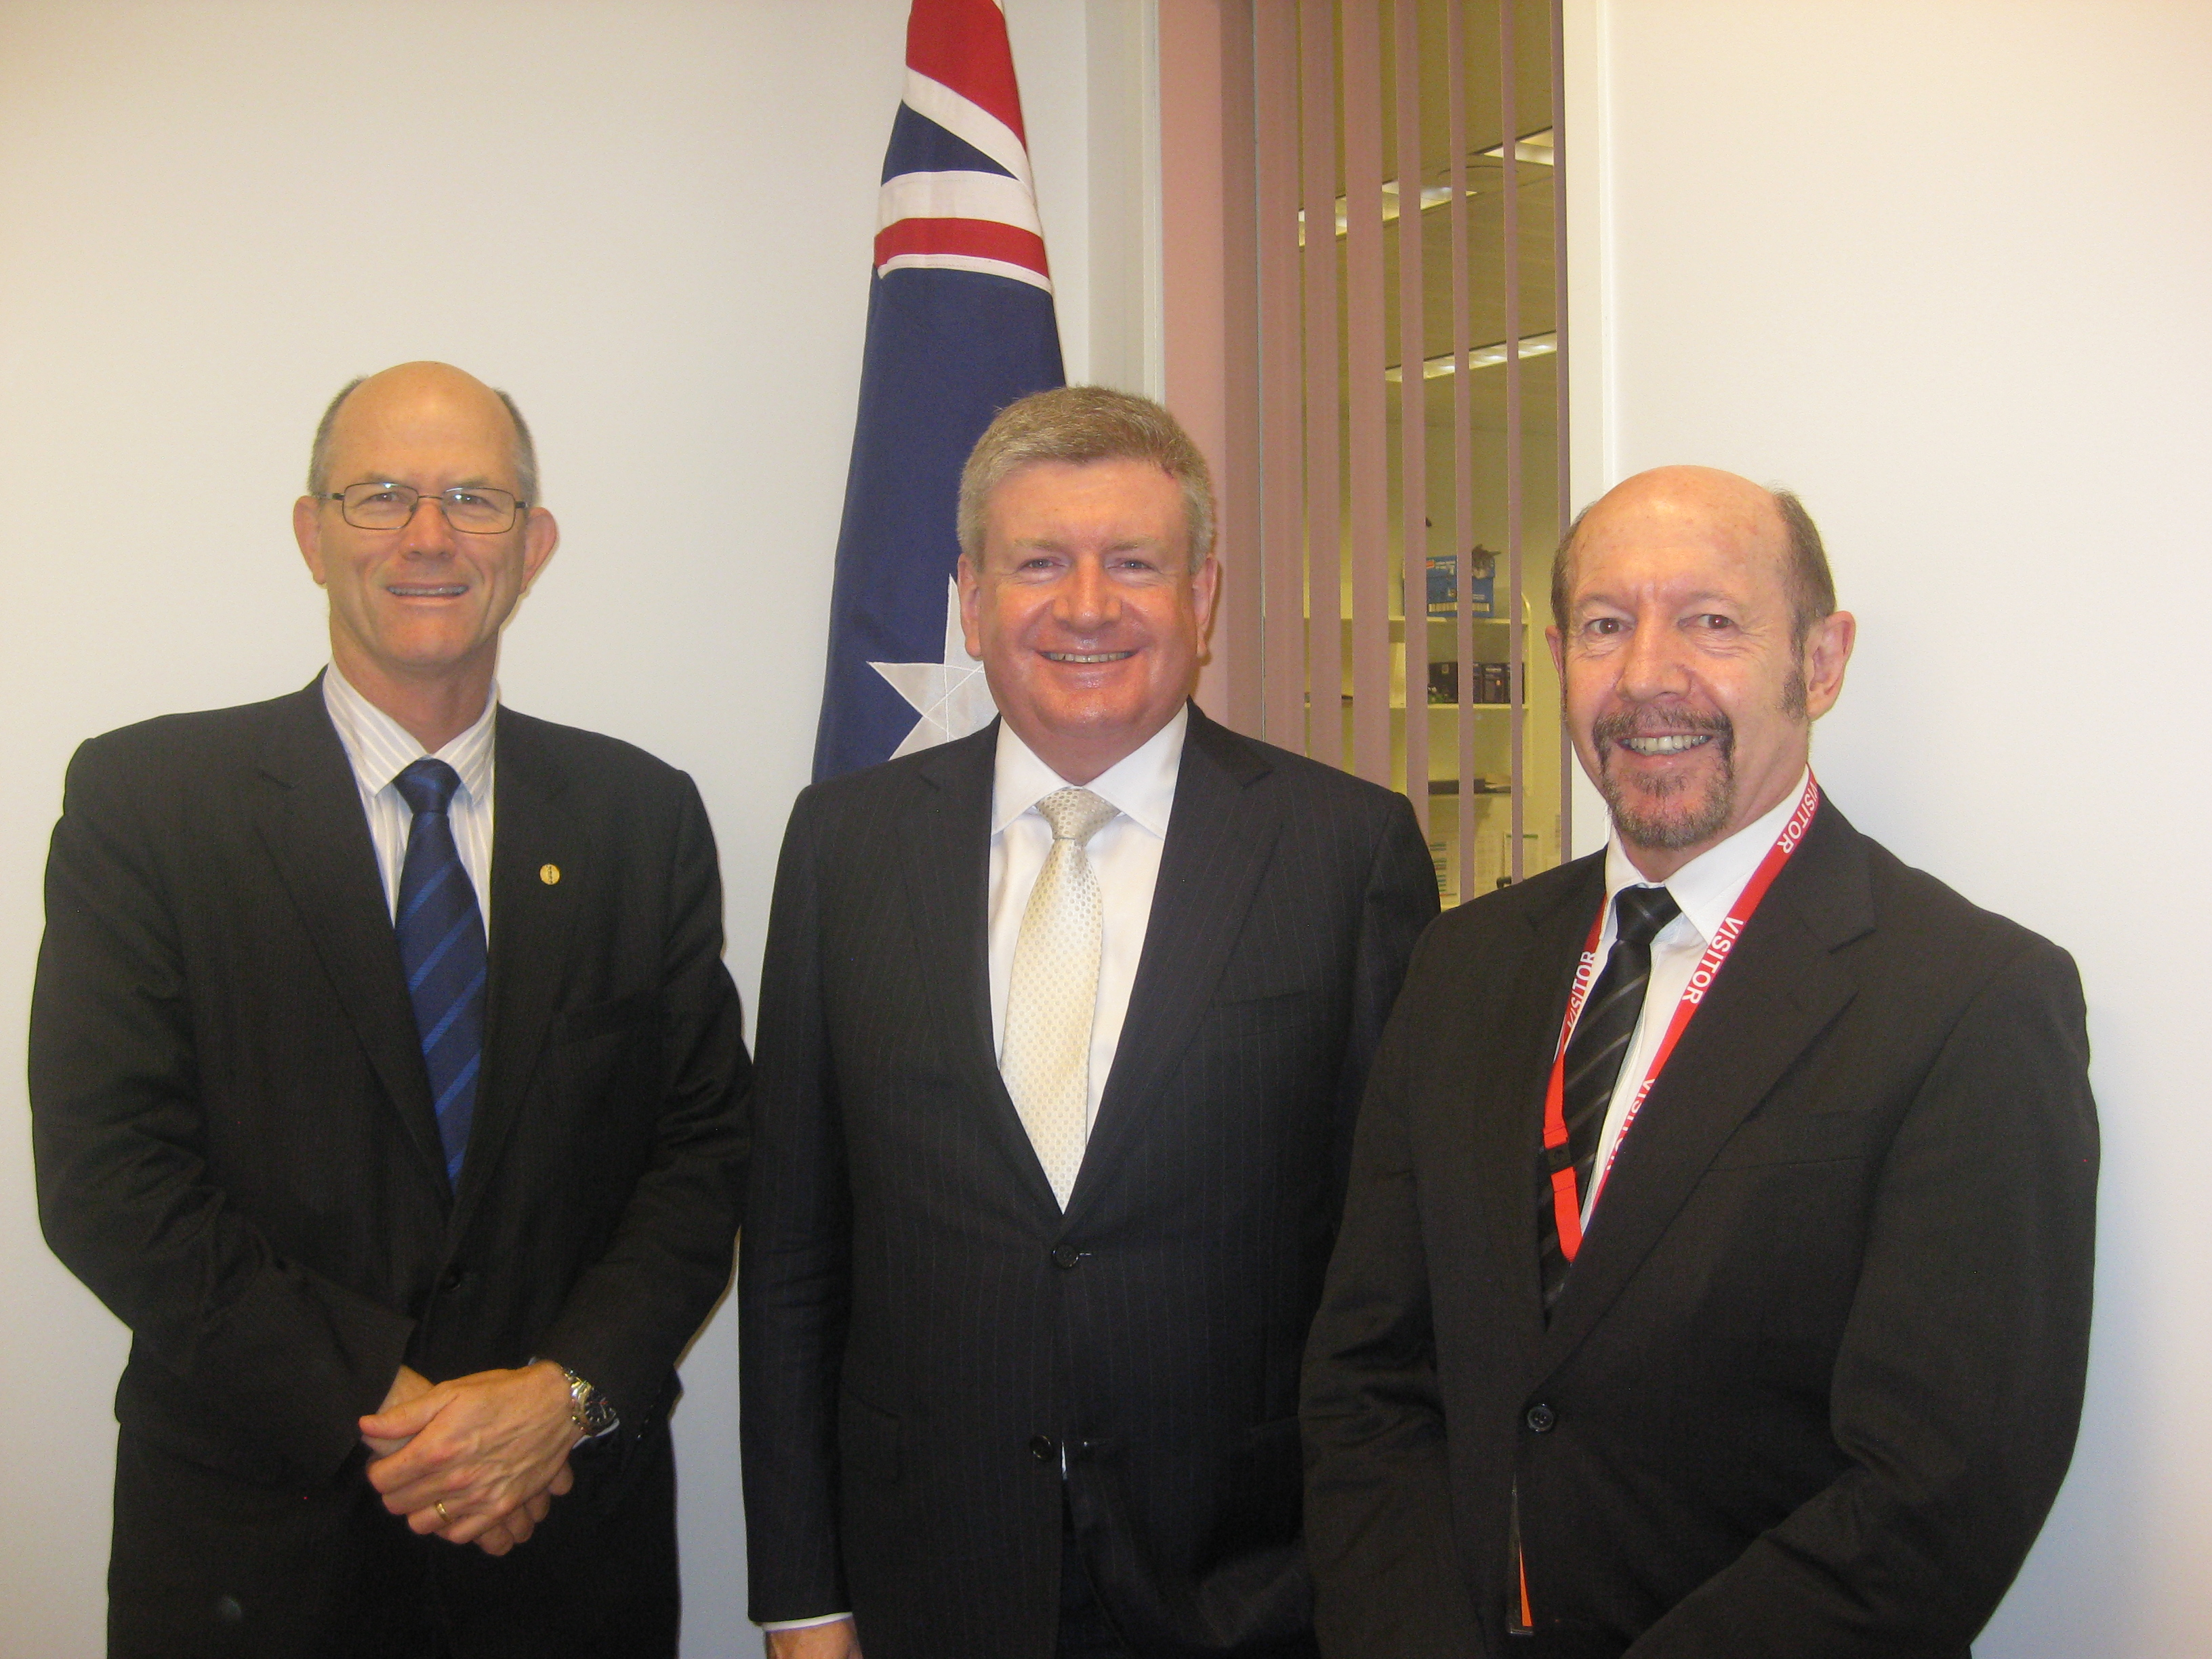 7142_dr_hambleton_with_minister_fified_and_ama_queensland_representative_dr_richard_kidd.jpg